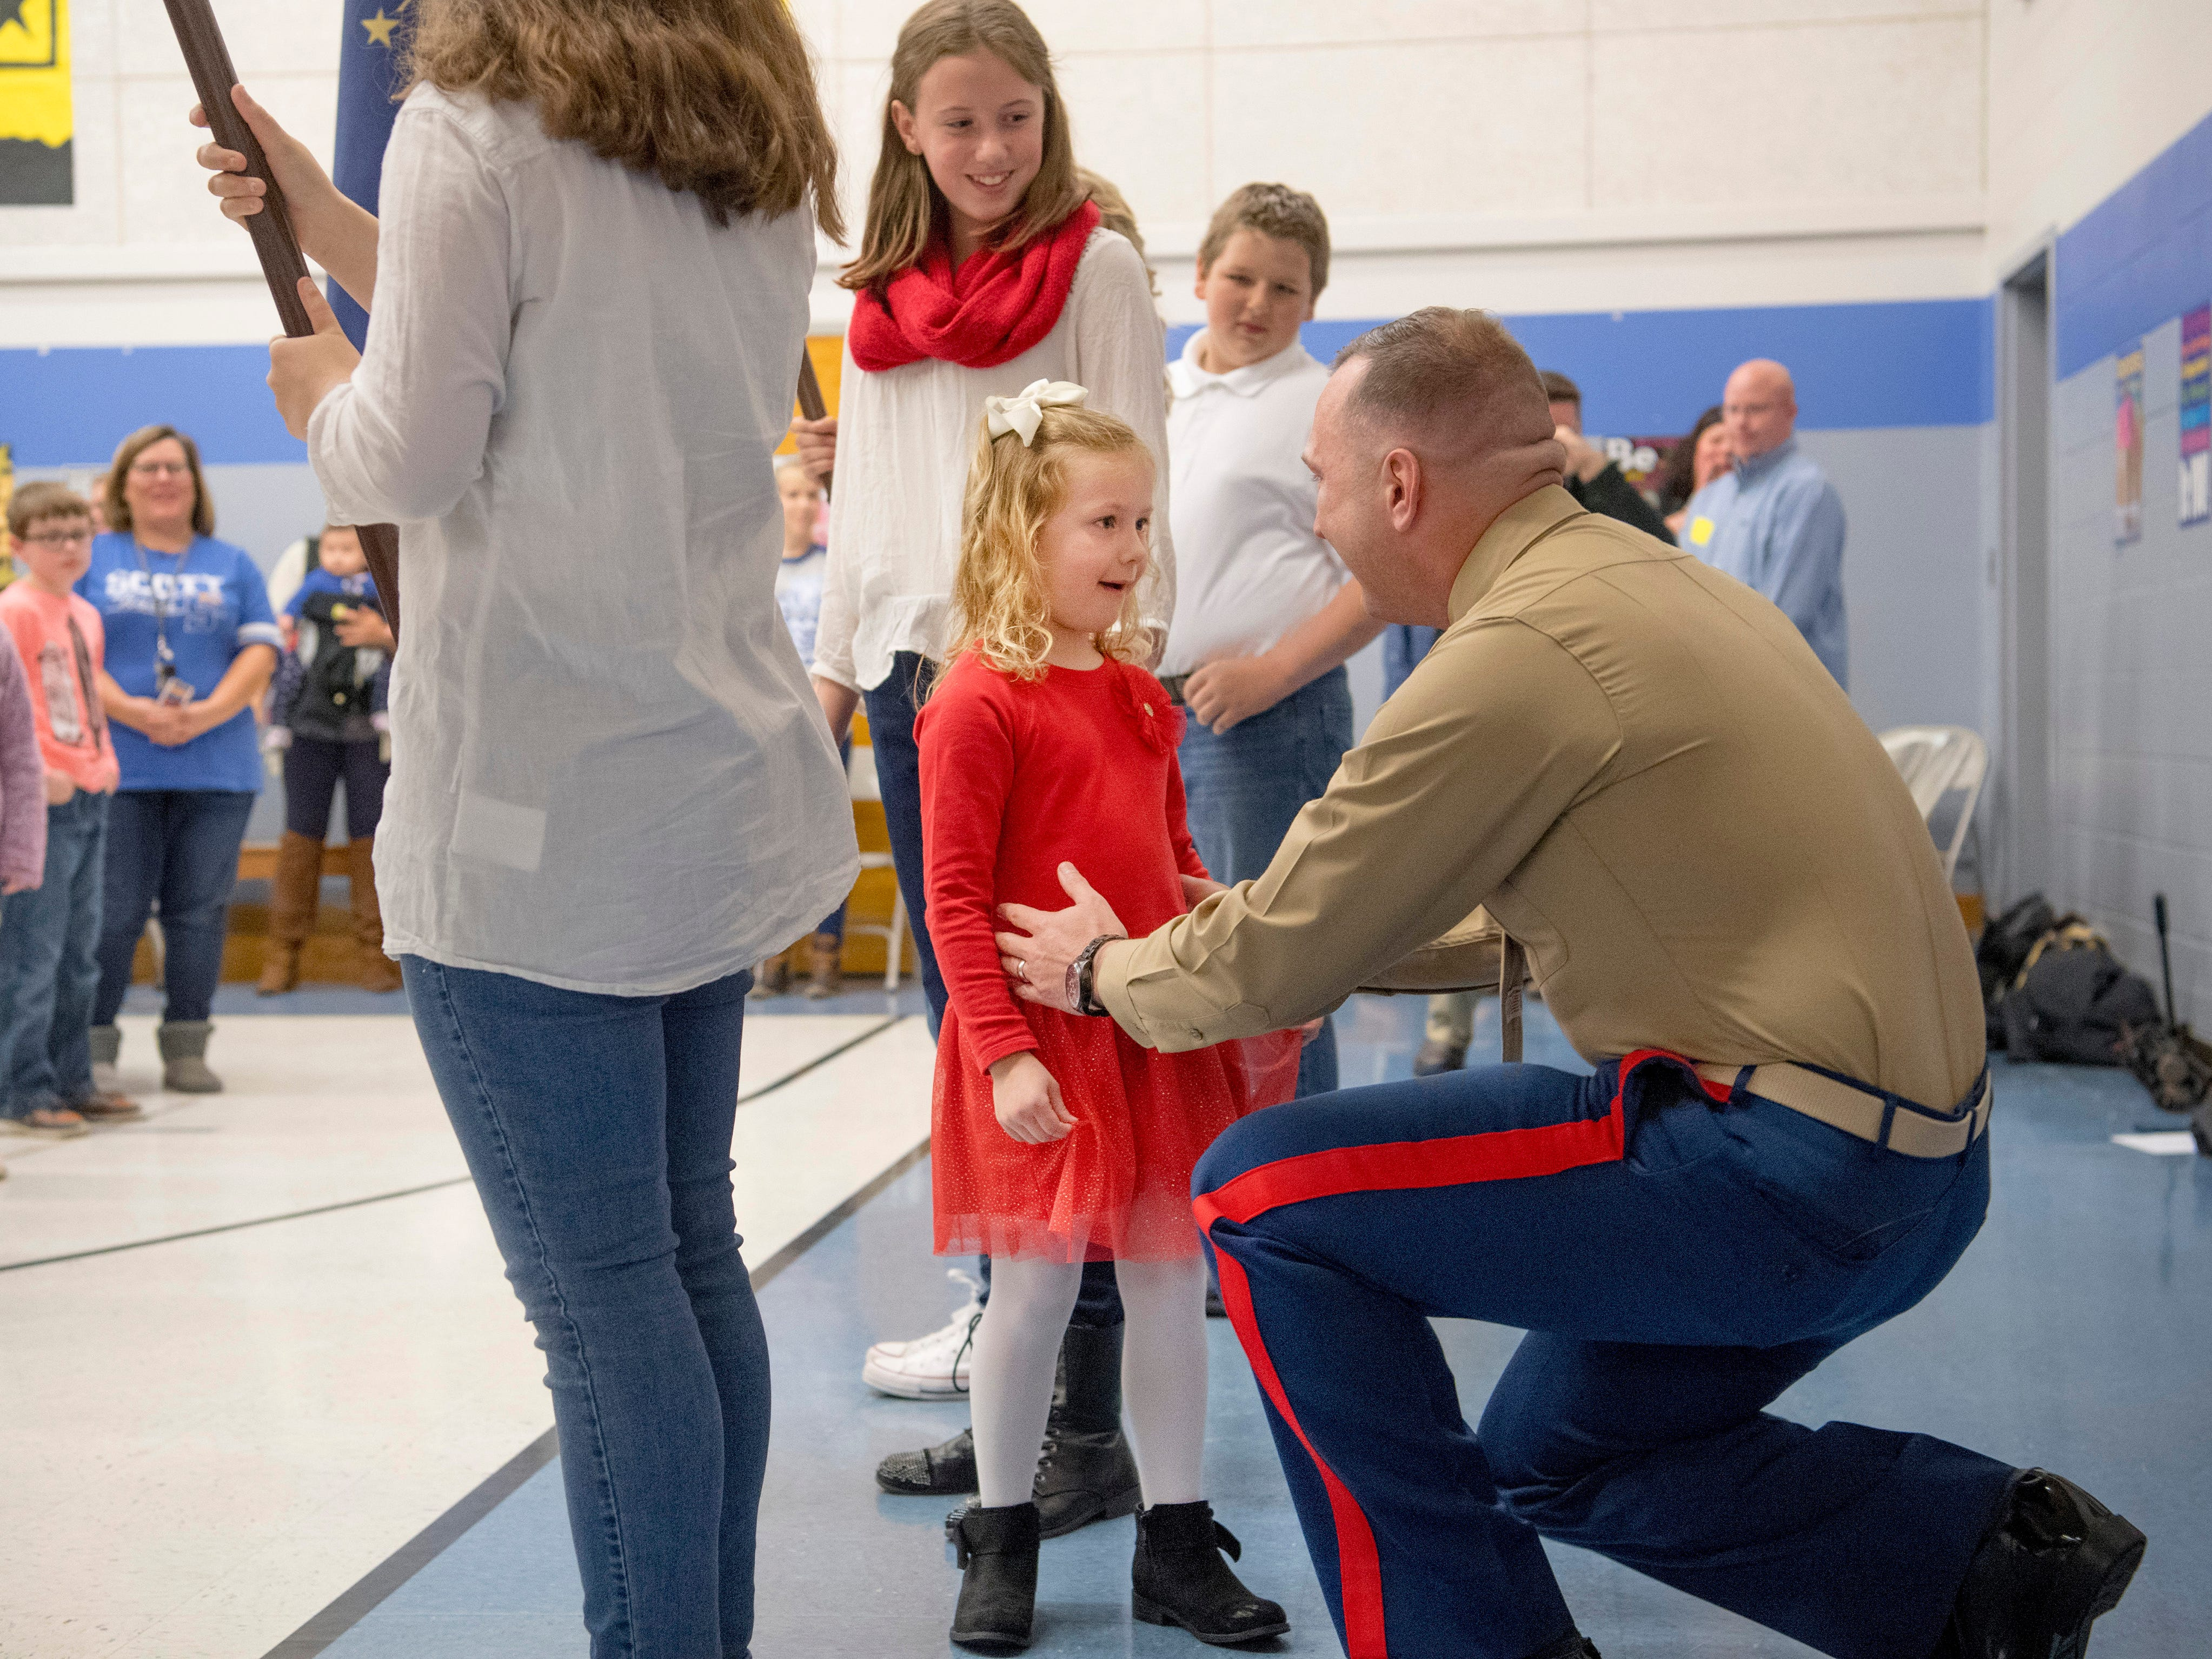 Scott Elementary School kindergartner Eliana Marzec, 5, center, is surprised to find her father, Marine Corps Capt. Ryan Marzec, standing behind her during the Veterans Day program Friday morning. Captain Marzec returned from a tour in Afghanistan and surprised the eldest of his three daughters.